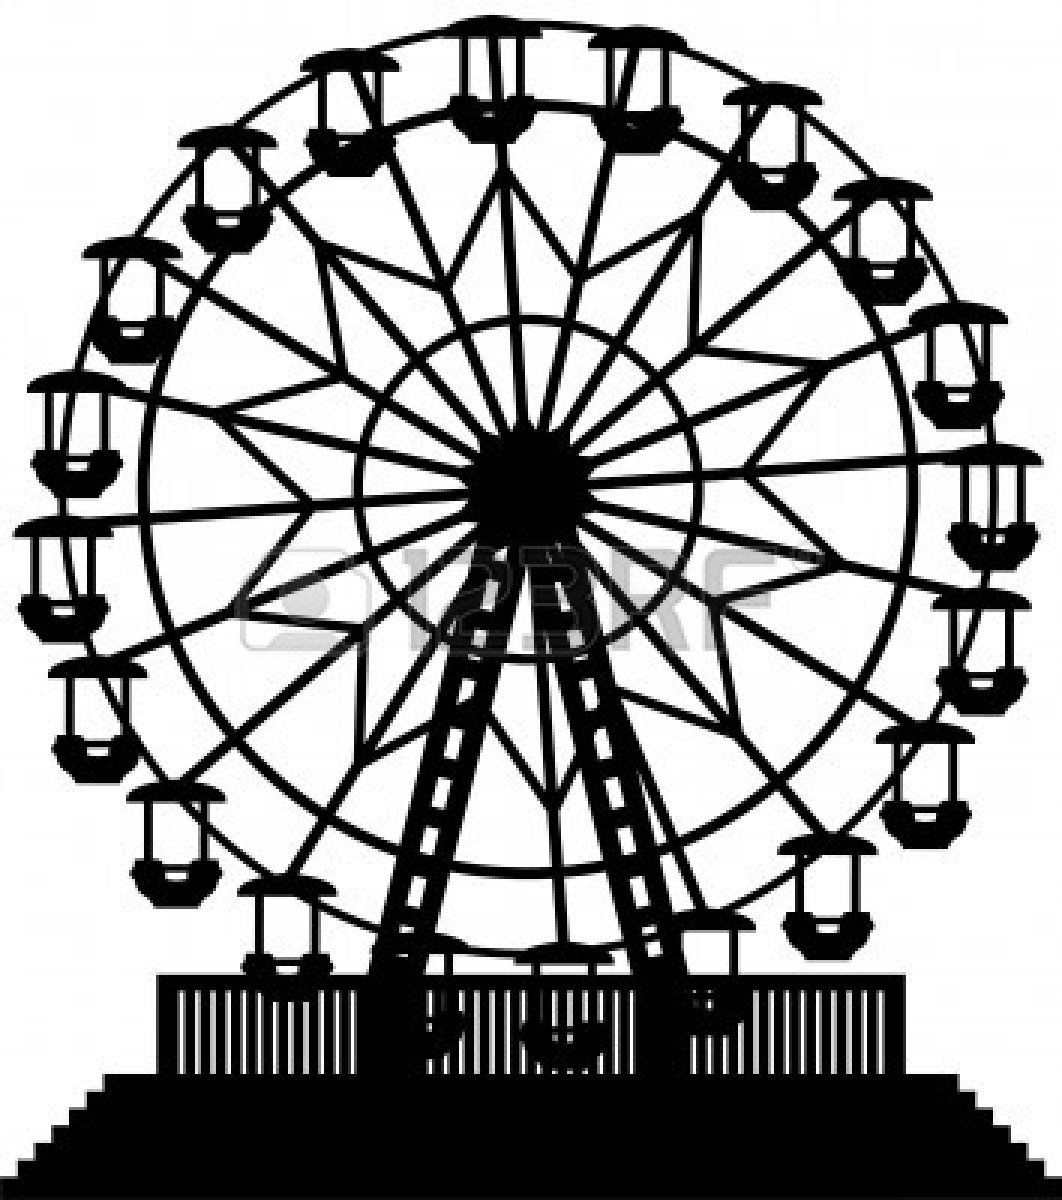 ferris wheel clipart wheels and 2 cut it out pinterest ferris rh pinterest ca ferris wheel clipart free ferris wheel clipart black and white